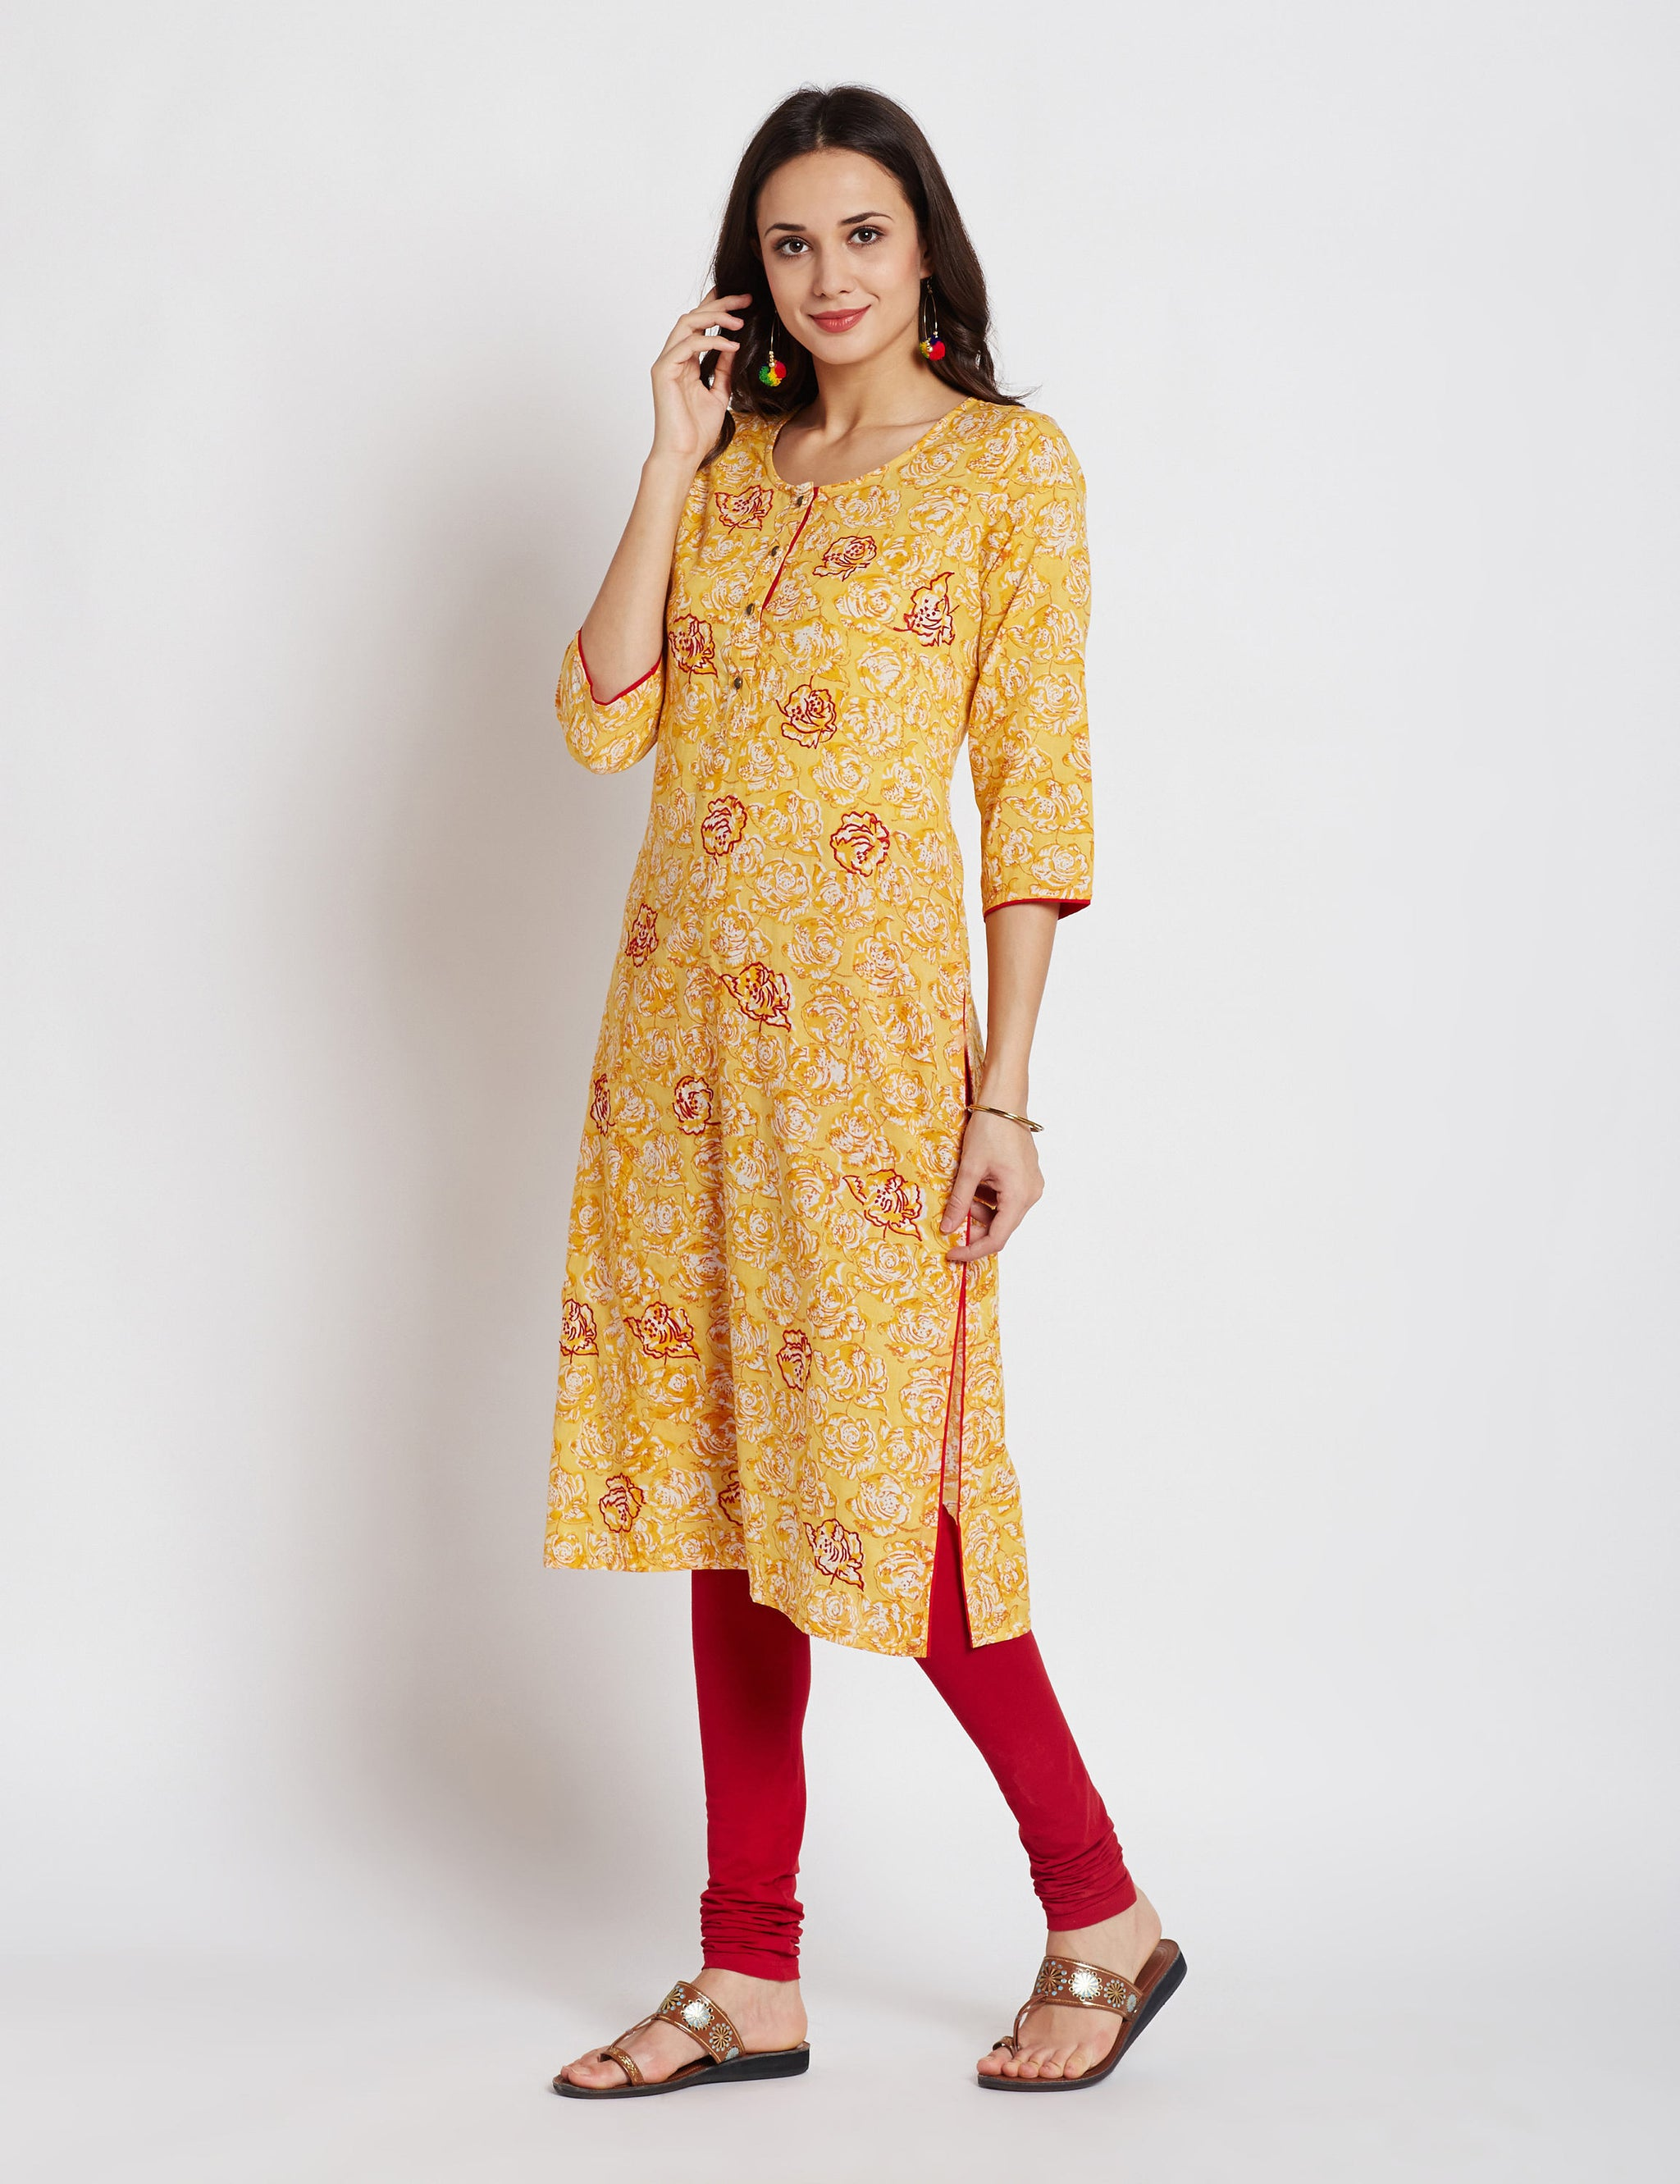 Hand block printed ethnic long Indian kurta with embroidery